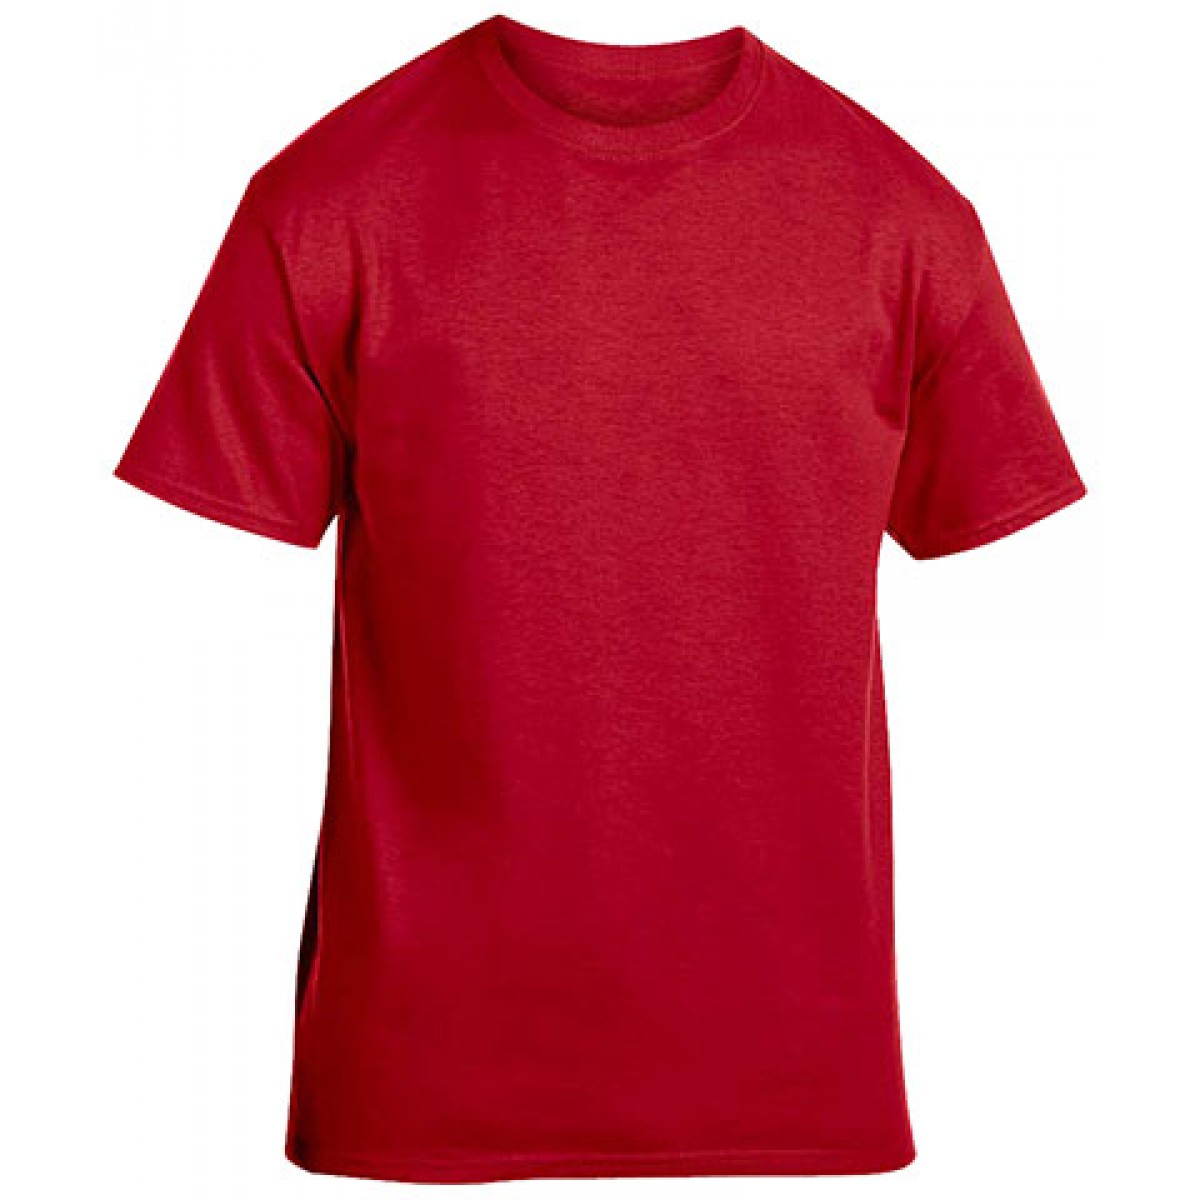 Heavy Cotton Activewear T-Shirt-Red-M